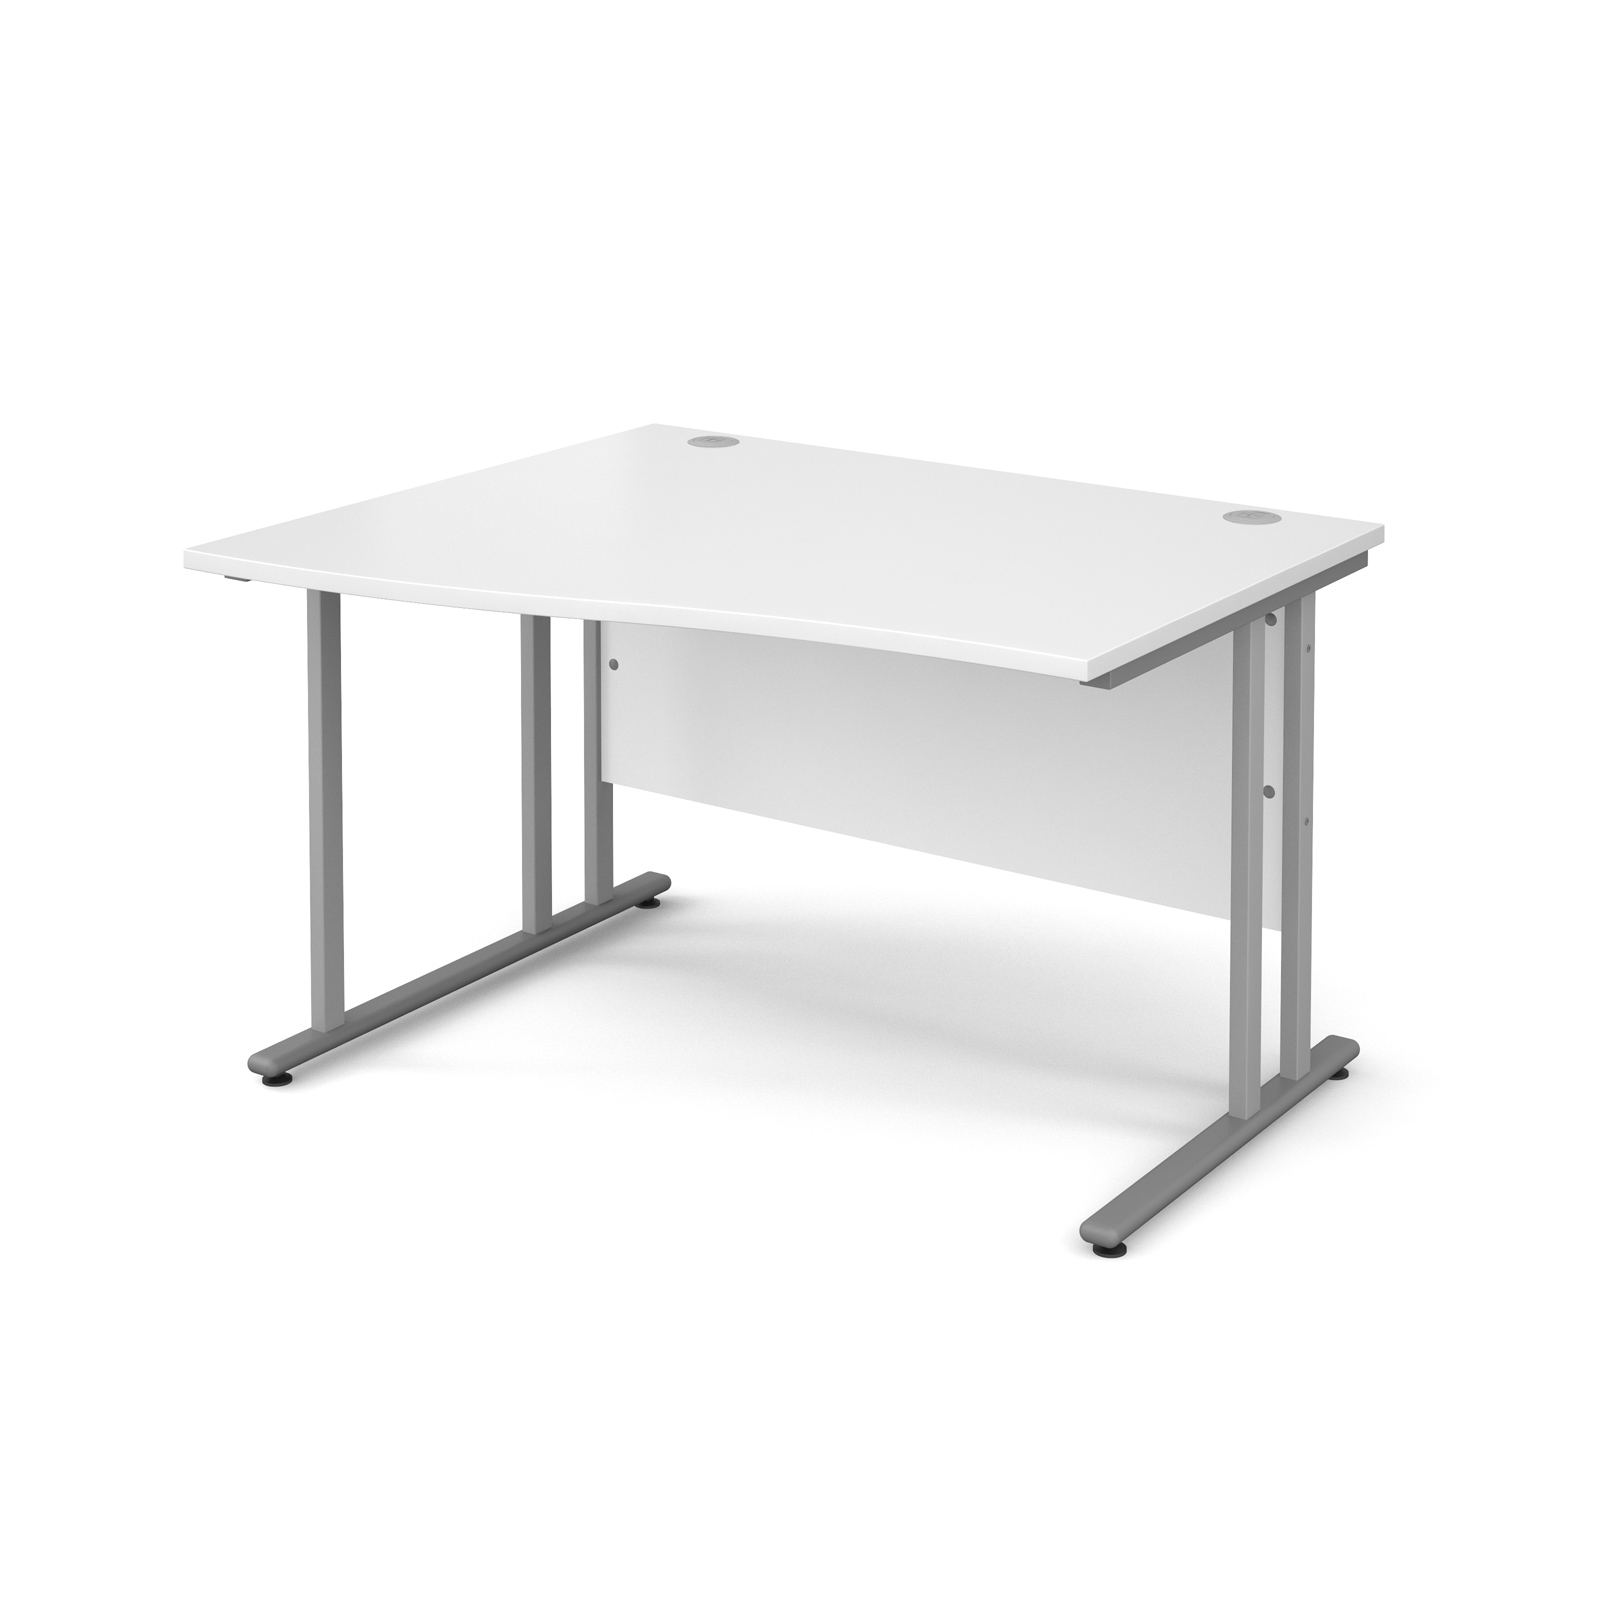 Maestro 25 SL Left Hand Wave Desk 1200mm Silver Cantilever Frame White Top